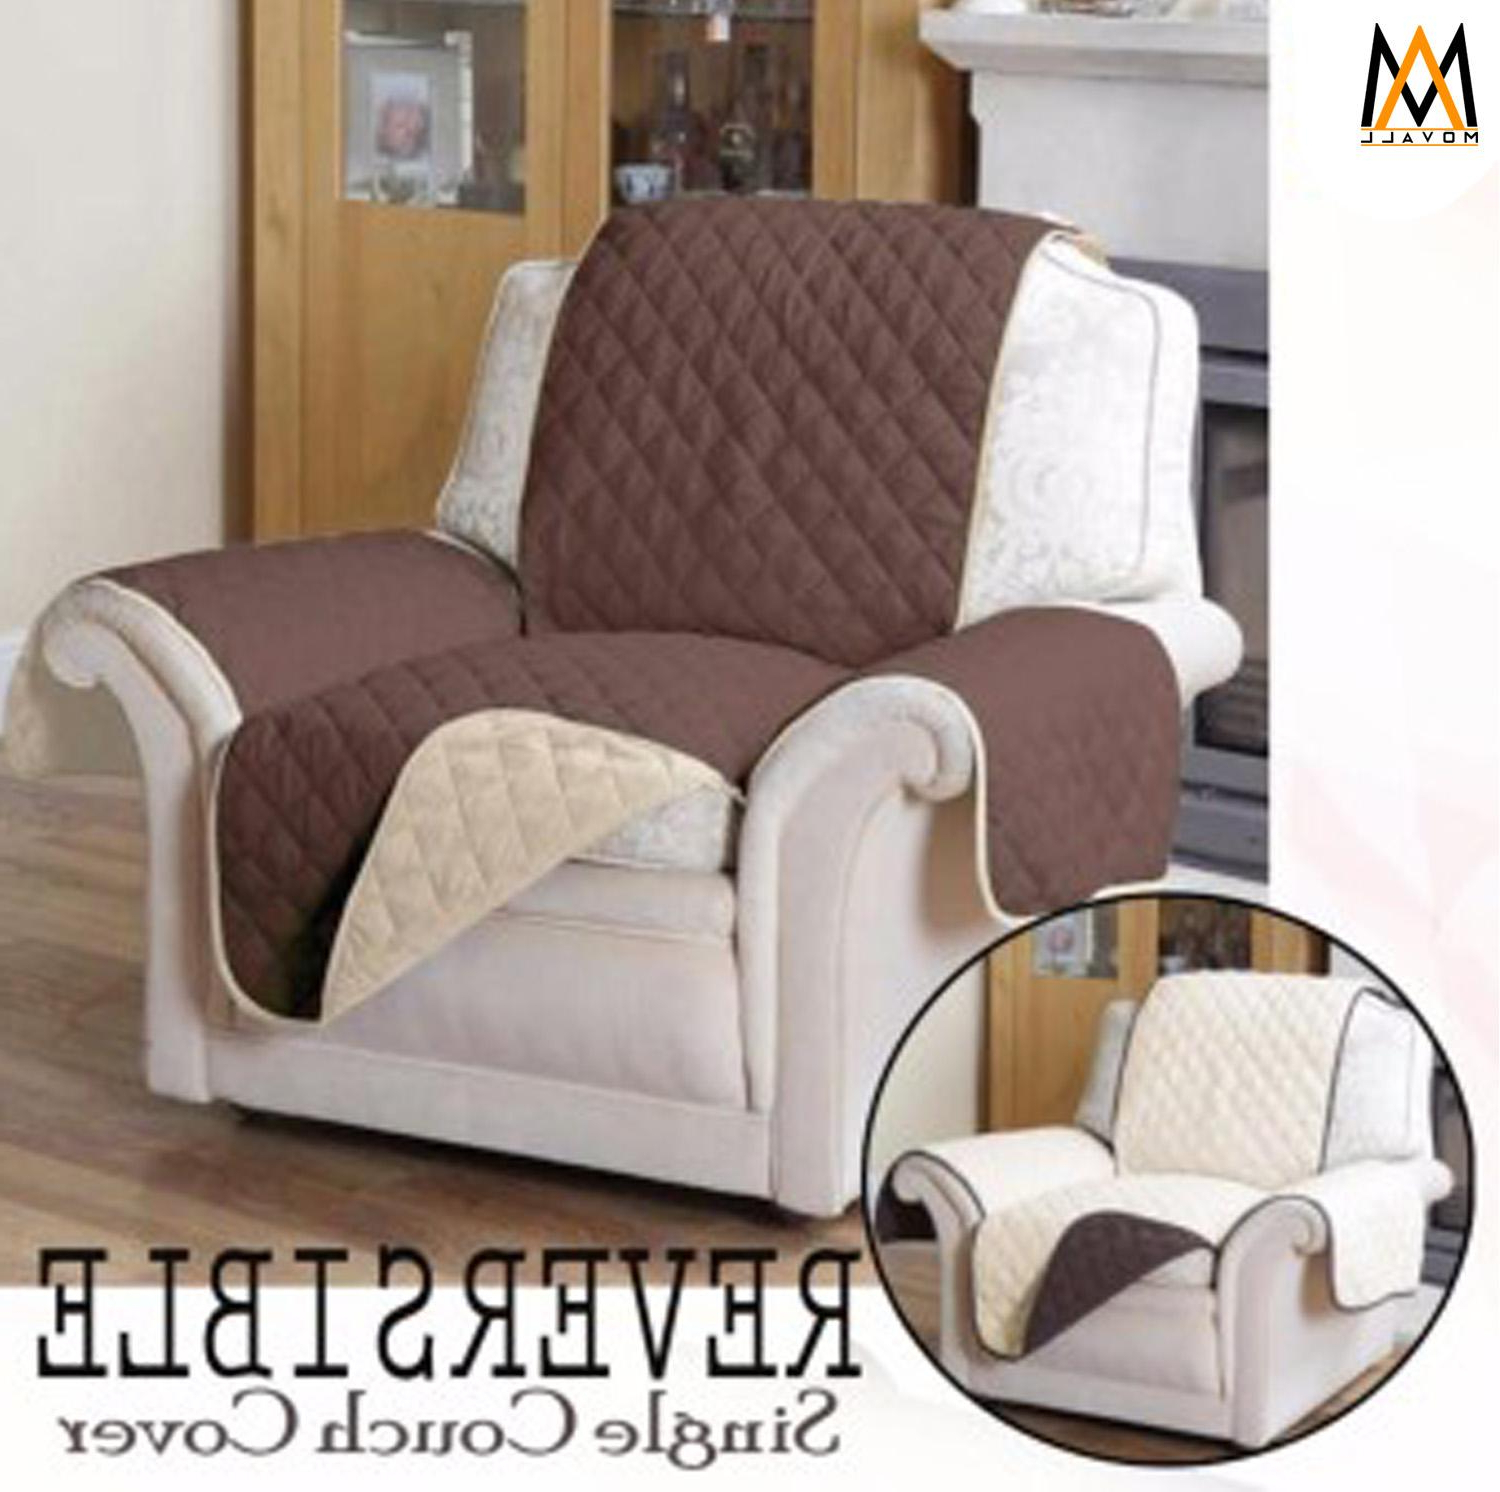 Popular Sofa And Chair Slipcovers With Regard To Slipcovers For Sale – Slipcover Prices, Brands & Review In (Gallery 12 of 20)